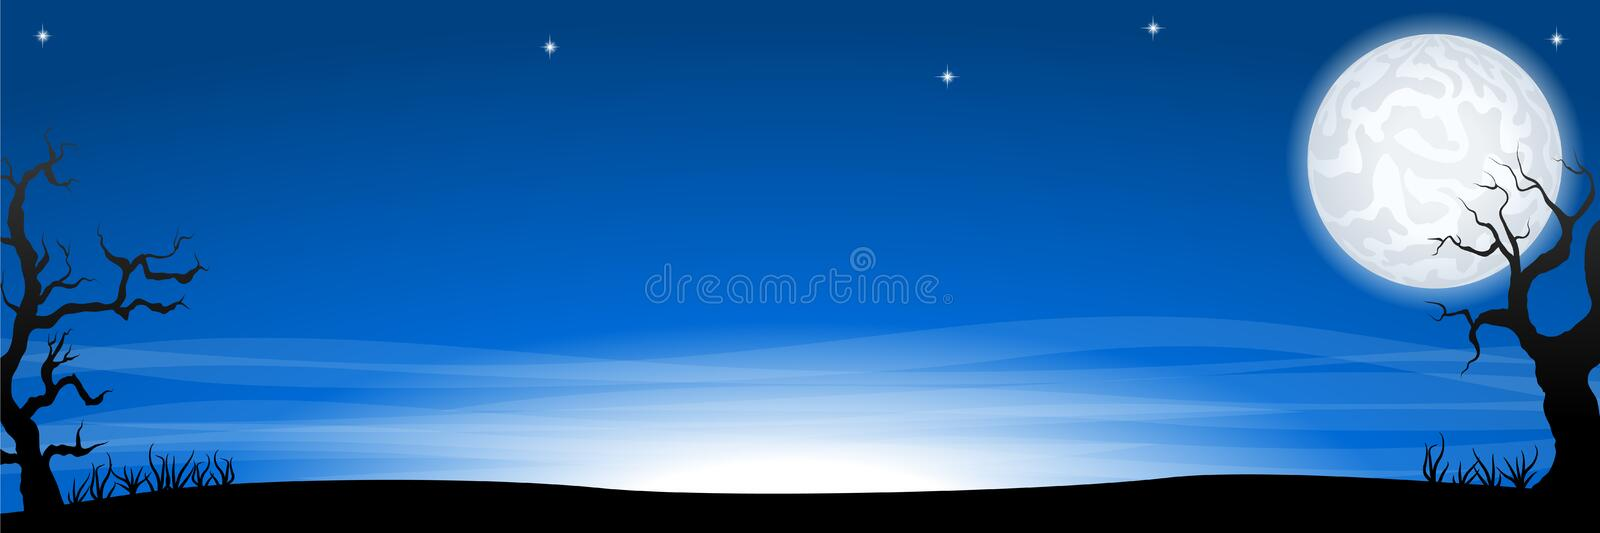 Eerie halloween night background banner with a full moon. Vector illustration of an eerie halloween night background banner with a full moon royalty free illustration